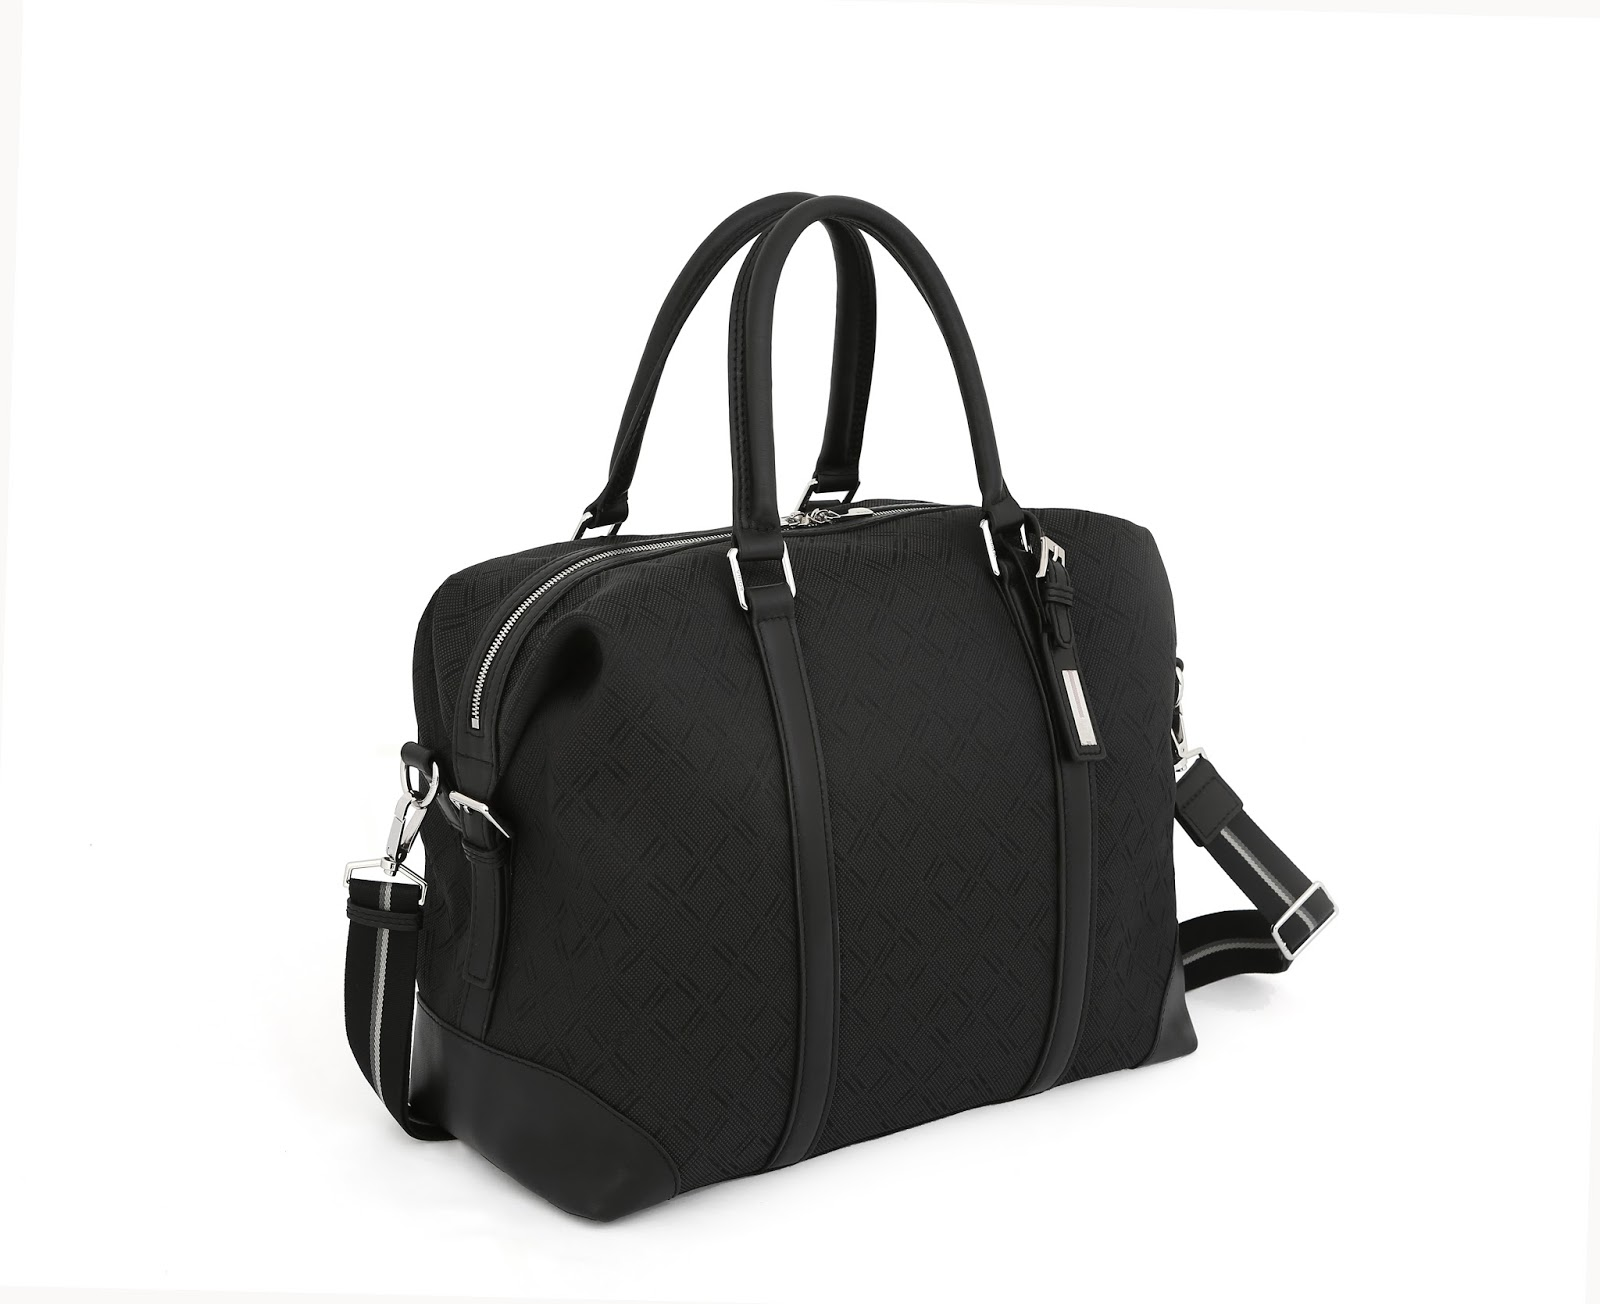 Bonia Introduces The Perfect Bag For Gentlemen Forming Practicality Functionality And Masculinity In New Season Of Spring Summer 2017